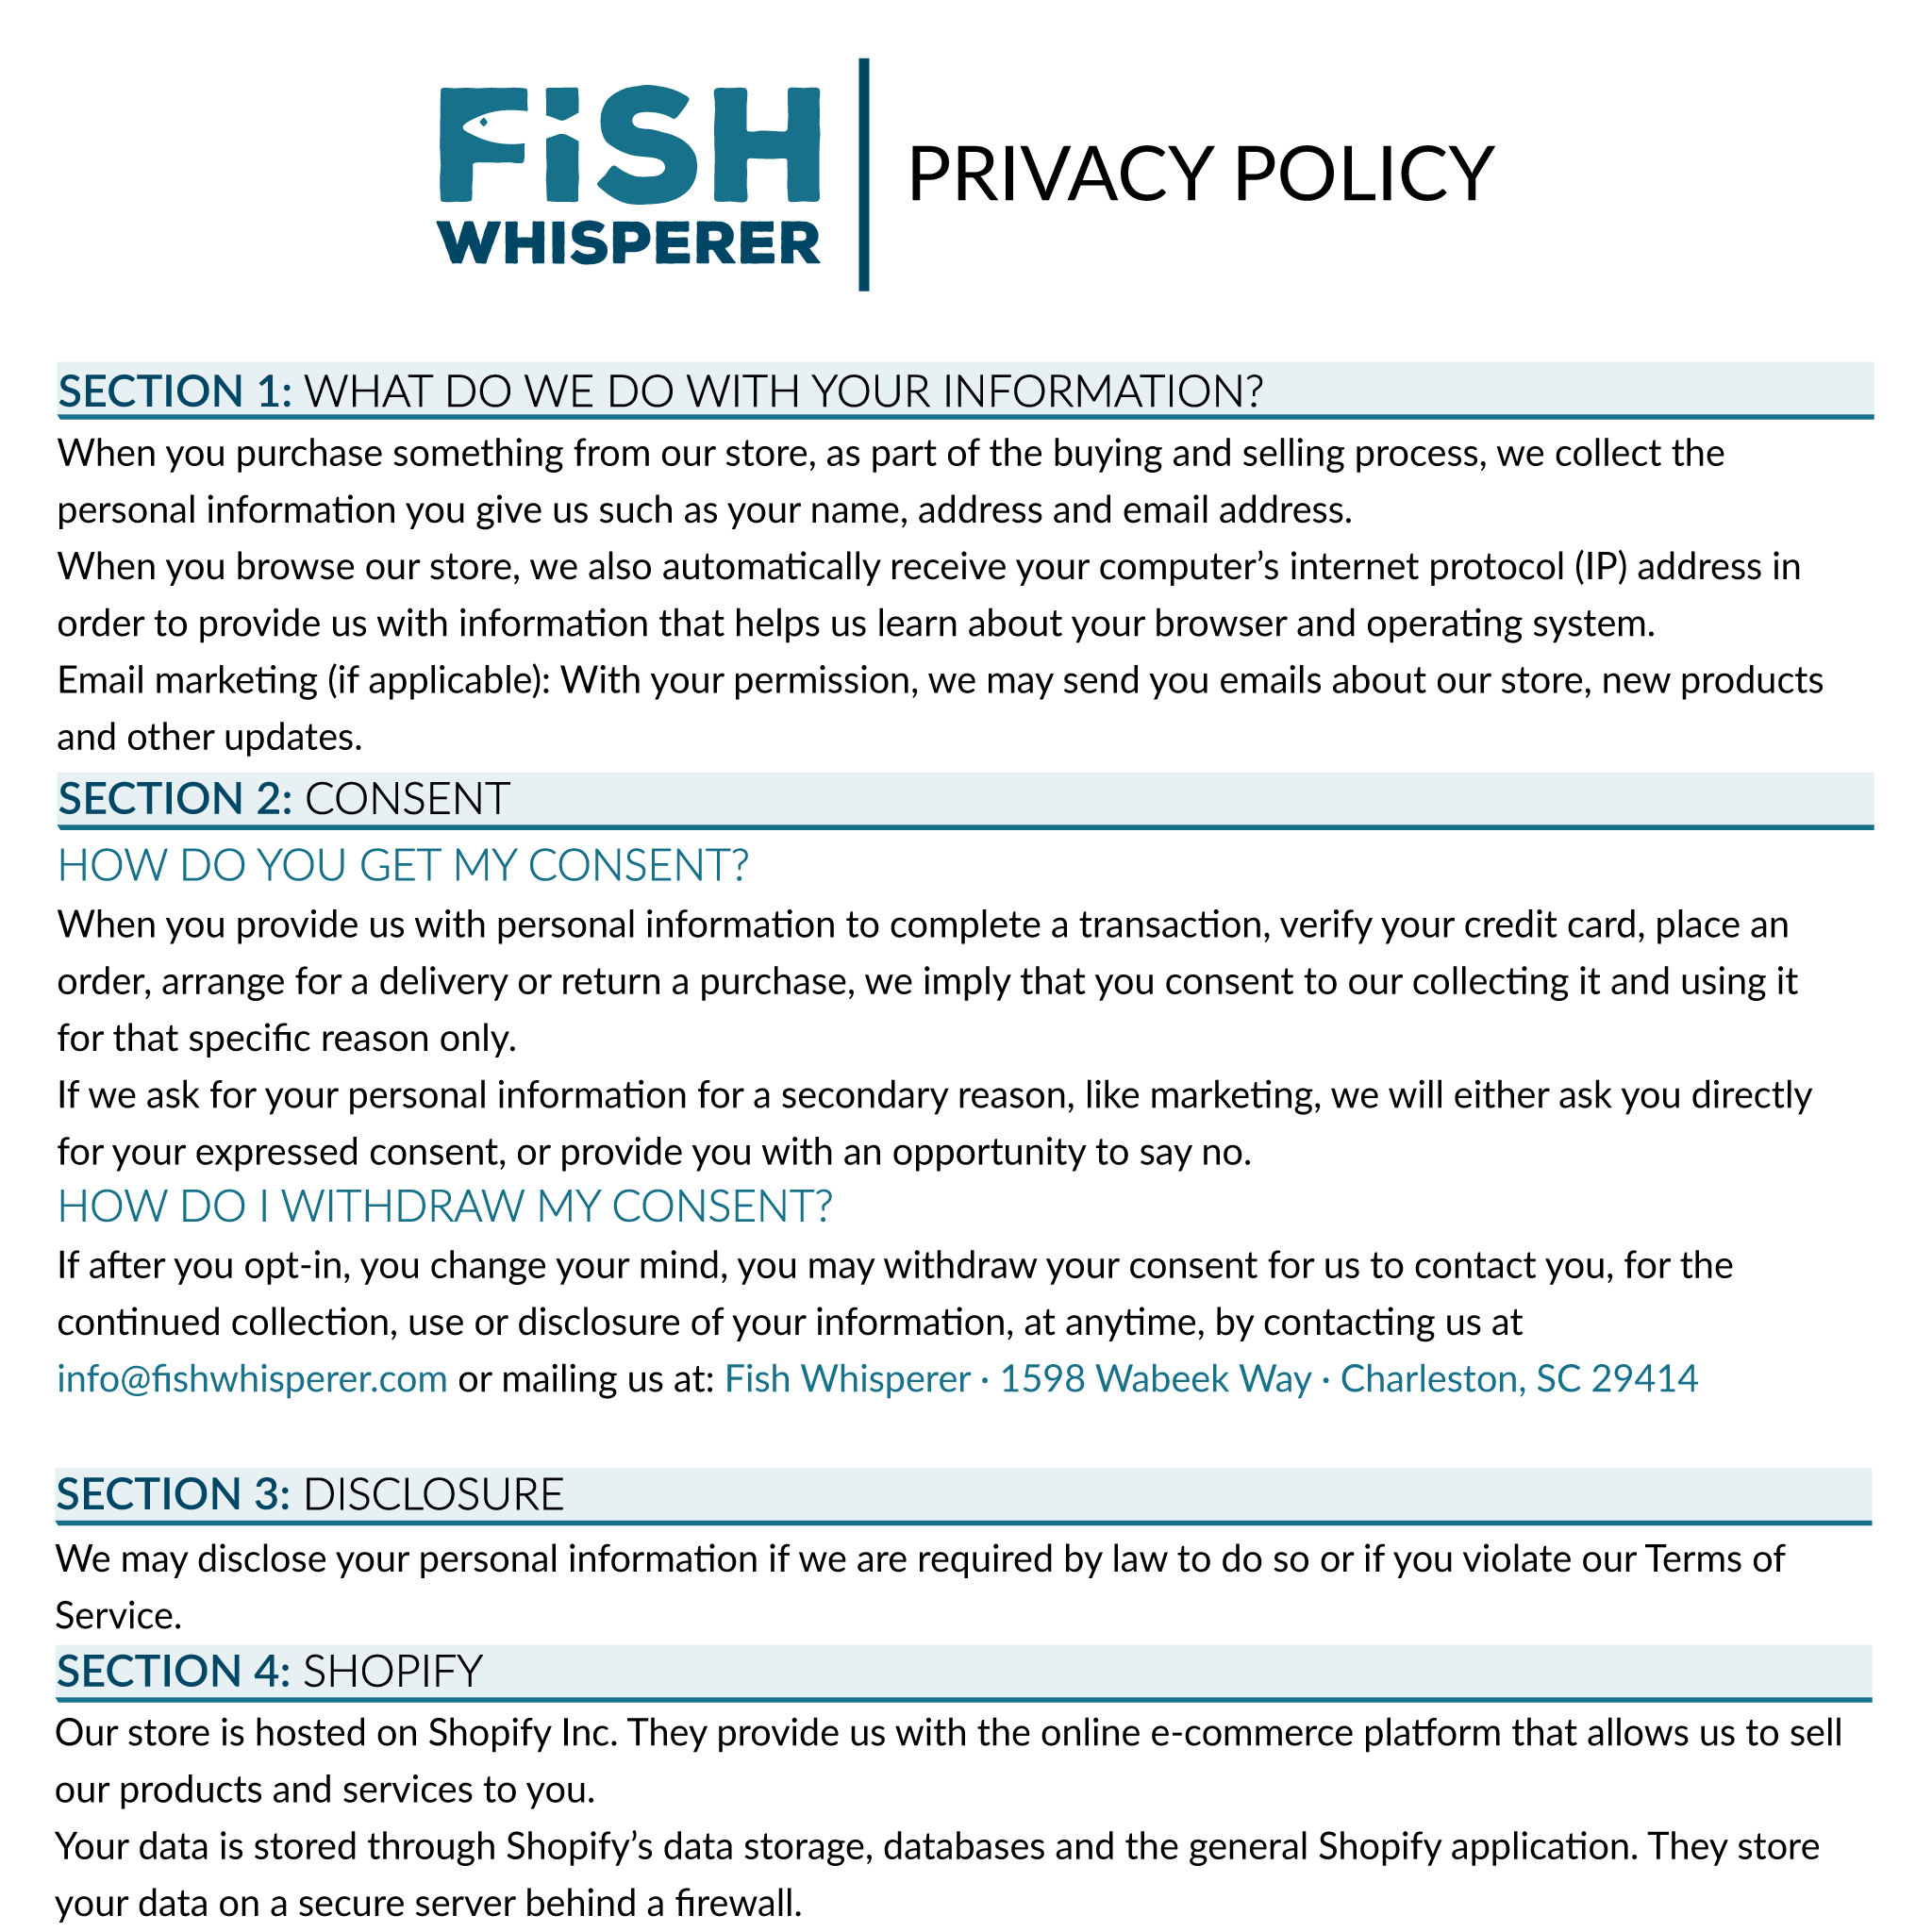 FishWhisperer Privacy Policy